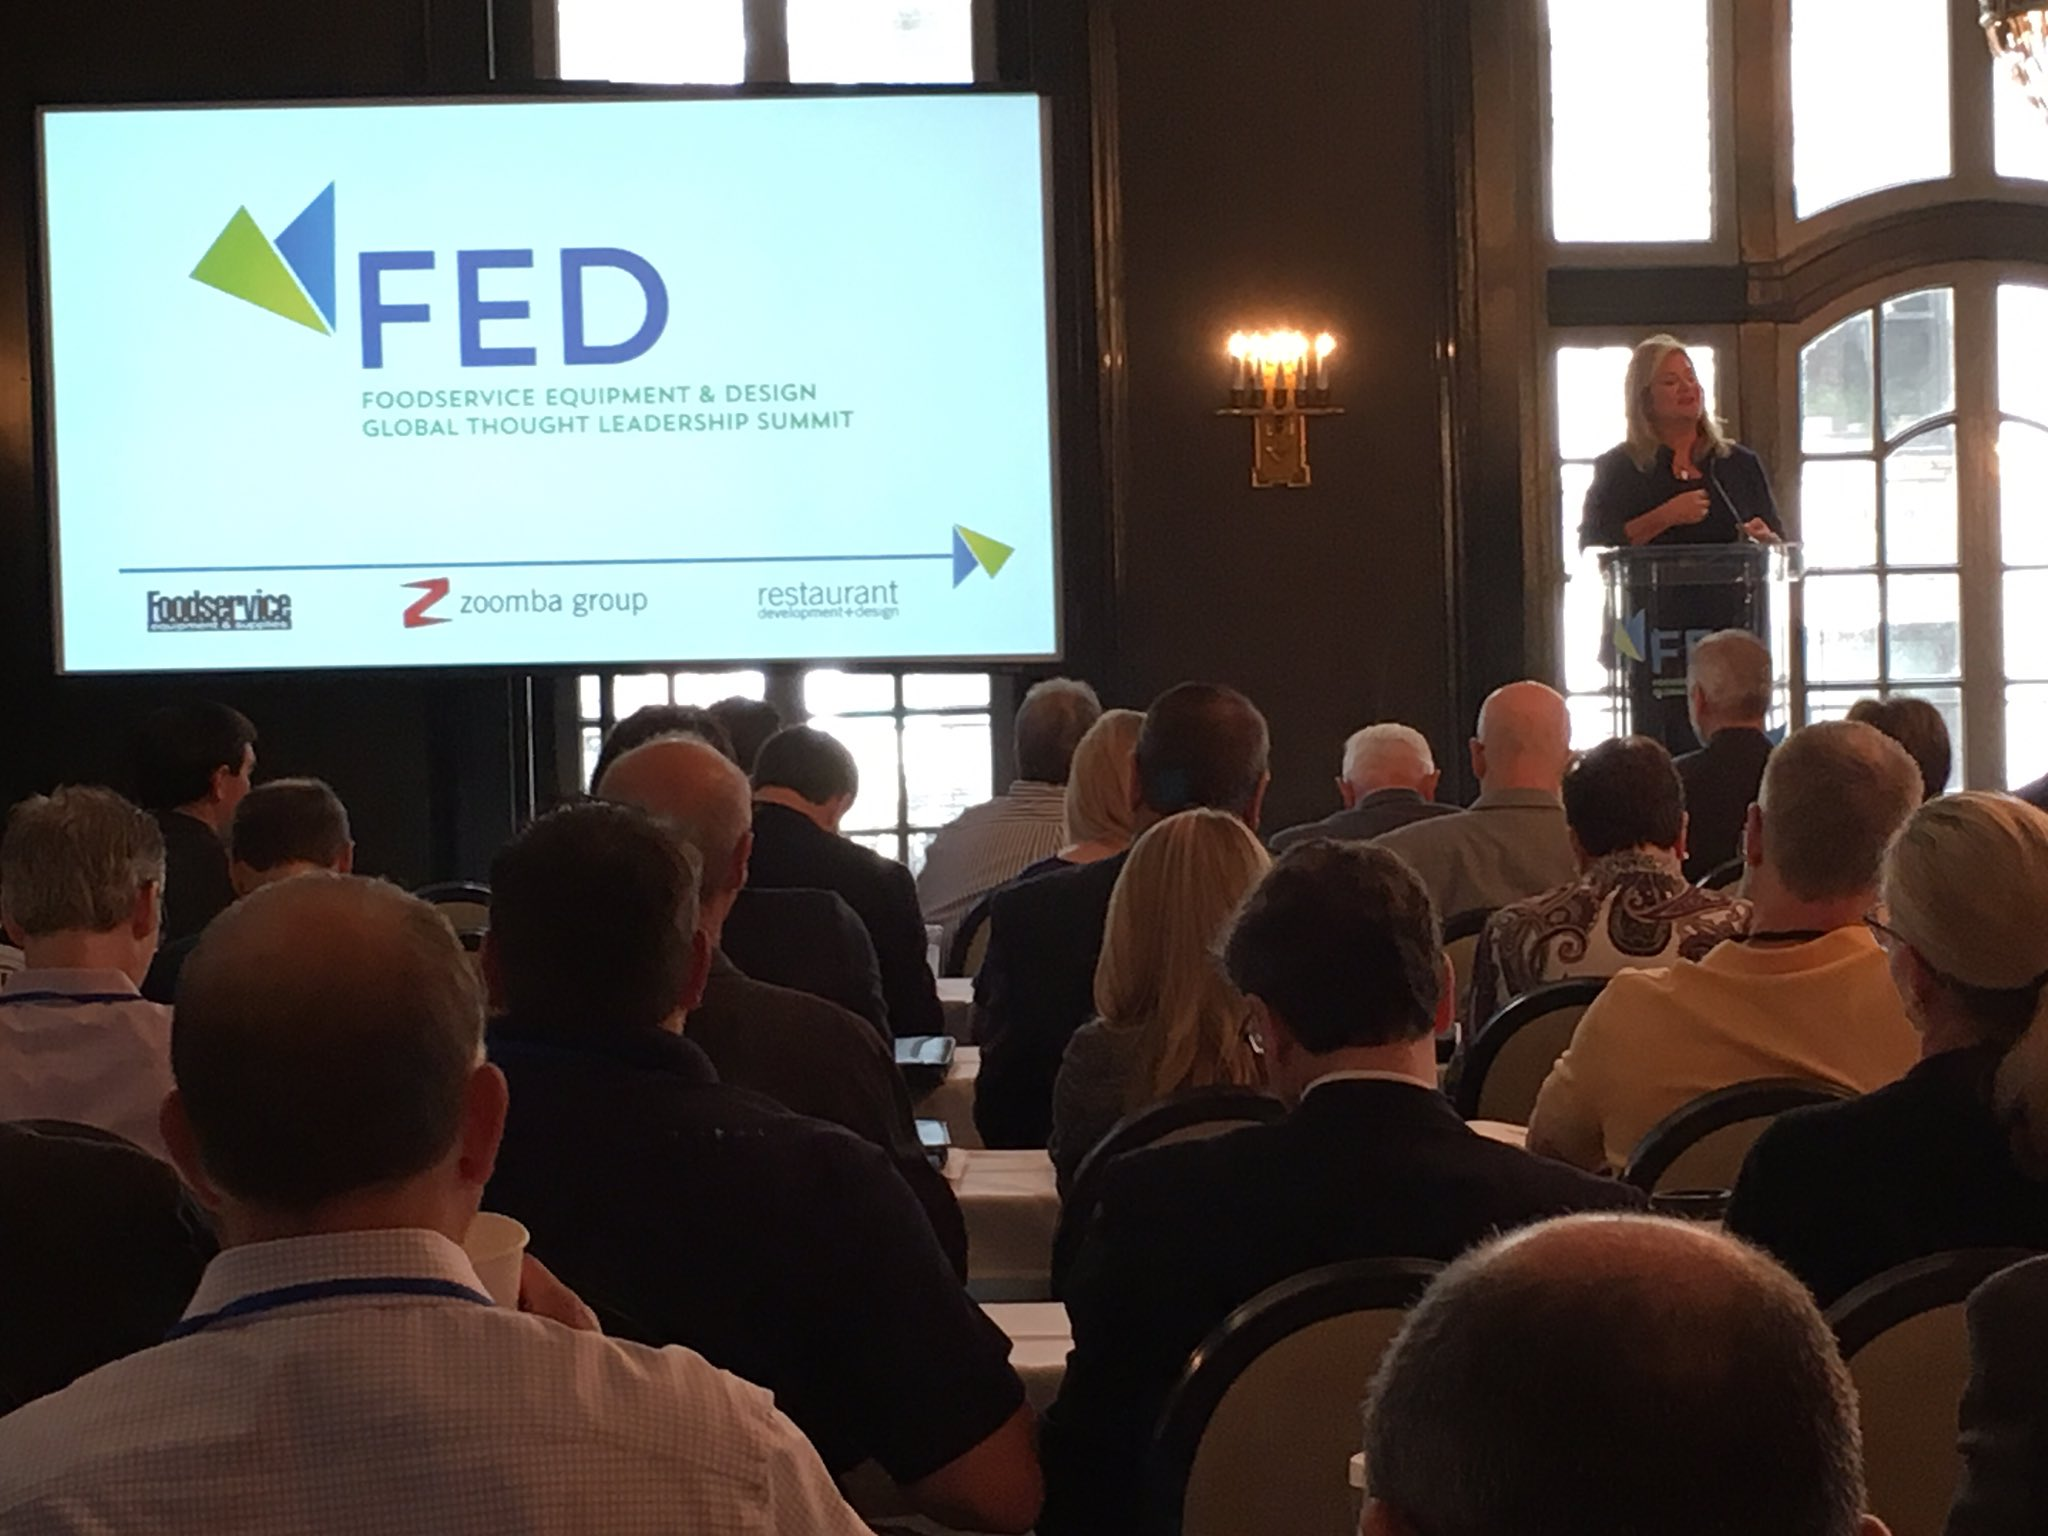 Foodservice Equipment & Design Global Thought Leadership Summit starts now. #FEDThought https://t.co/HwPxxURxoT